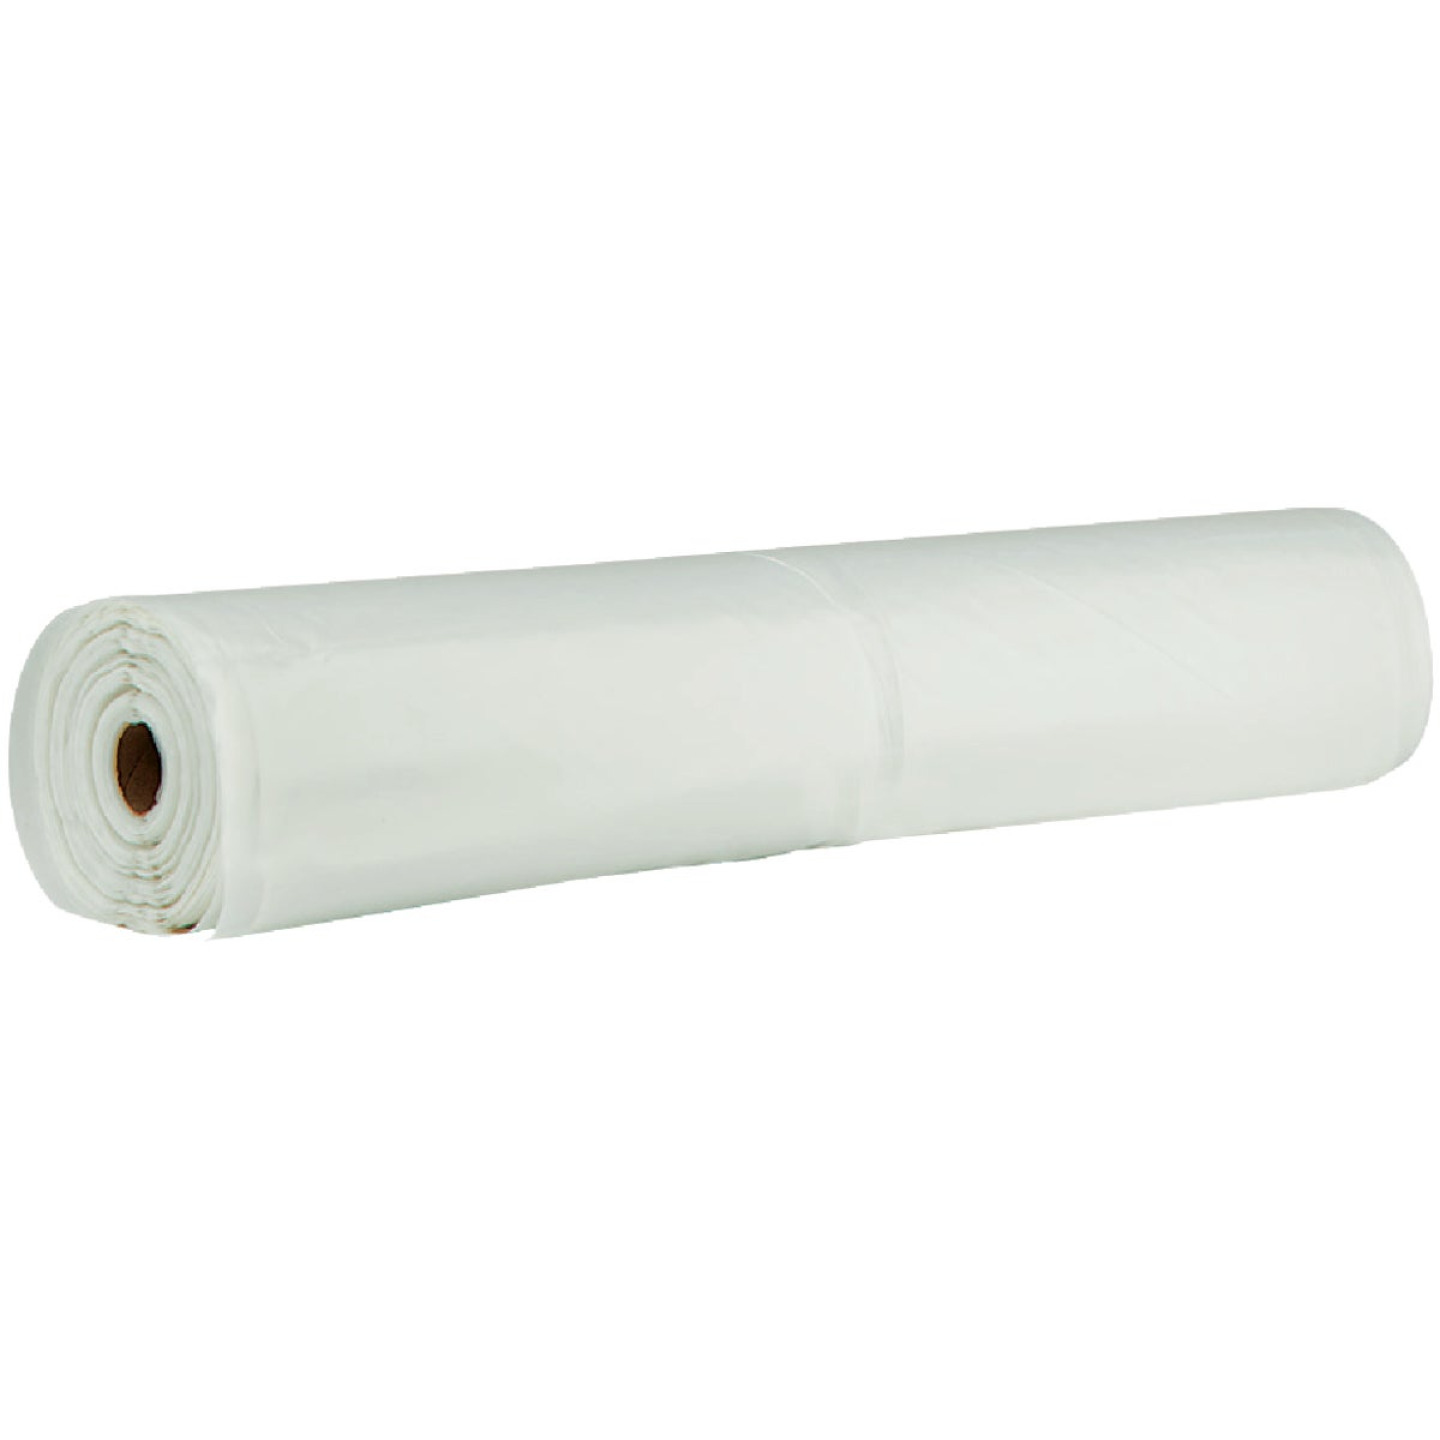 Film-Gard 20 Ft. x 50 Ft. Clear 6 Mil. Polyethylene Sheeting Image 1